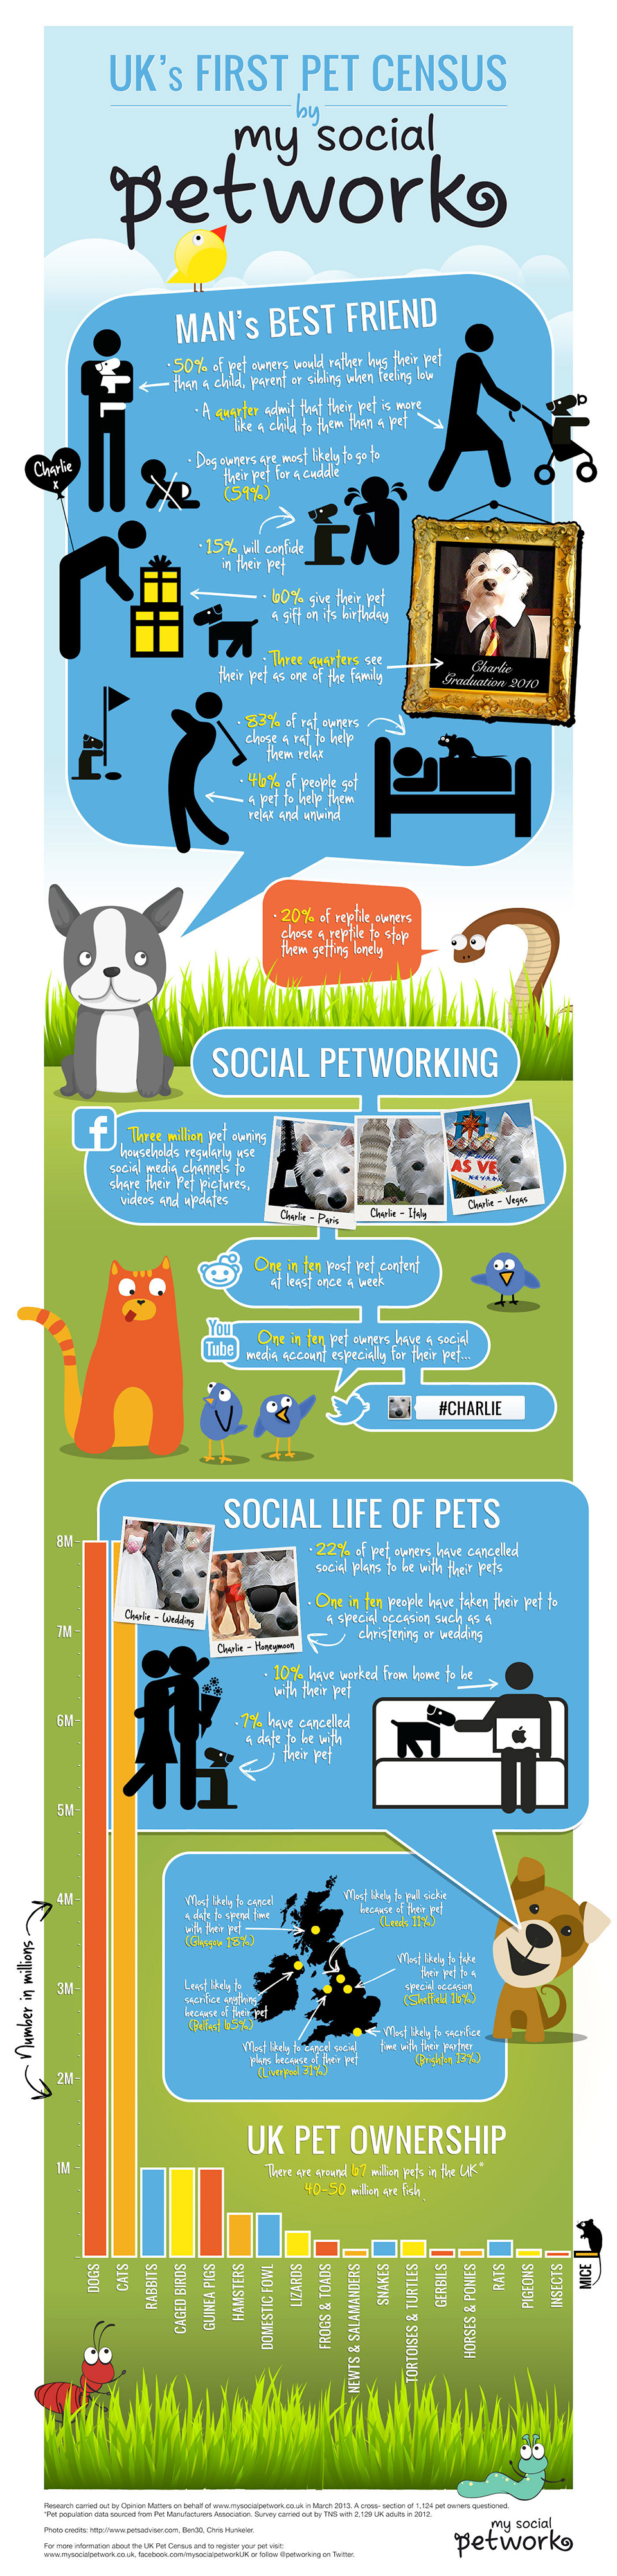 My Social Petwork – UK's First Pet Census